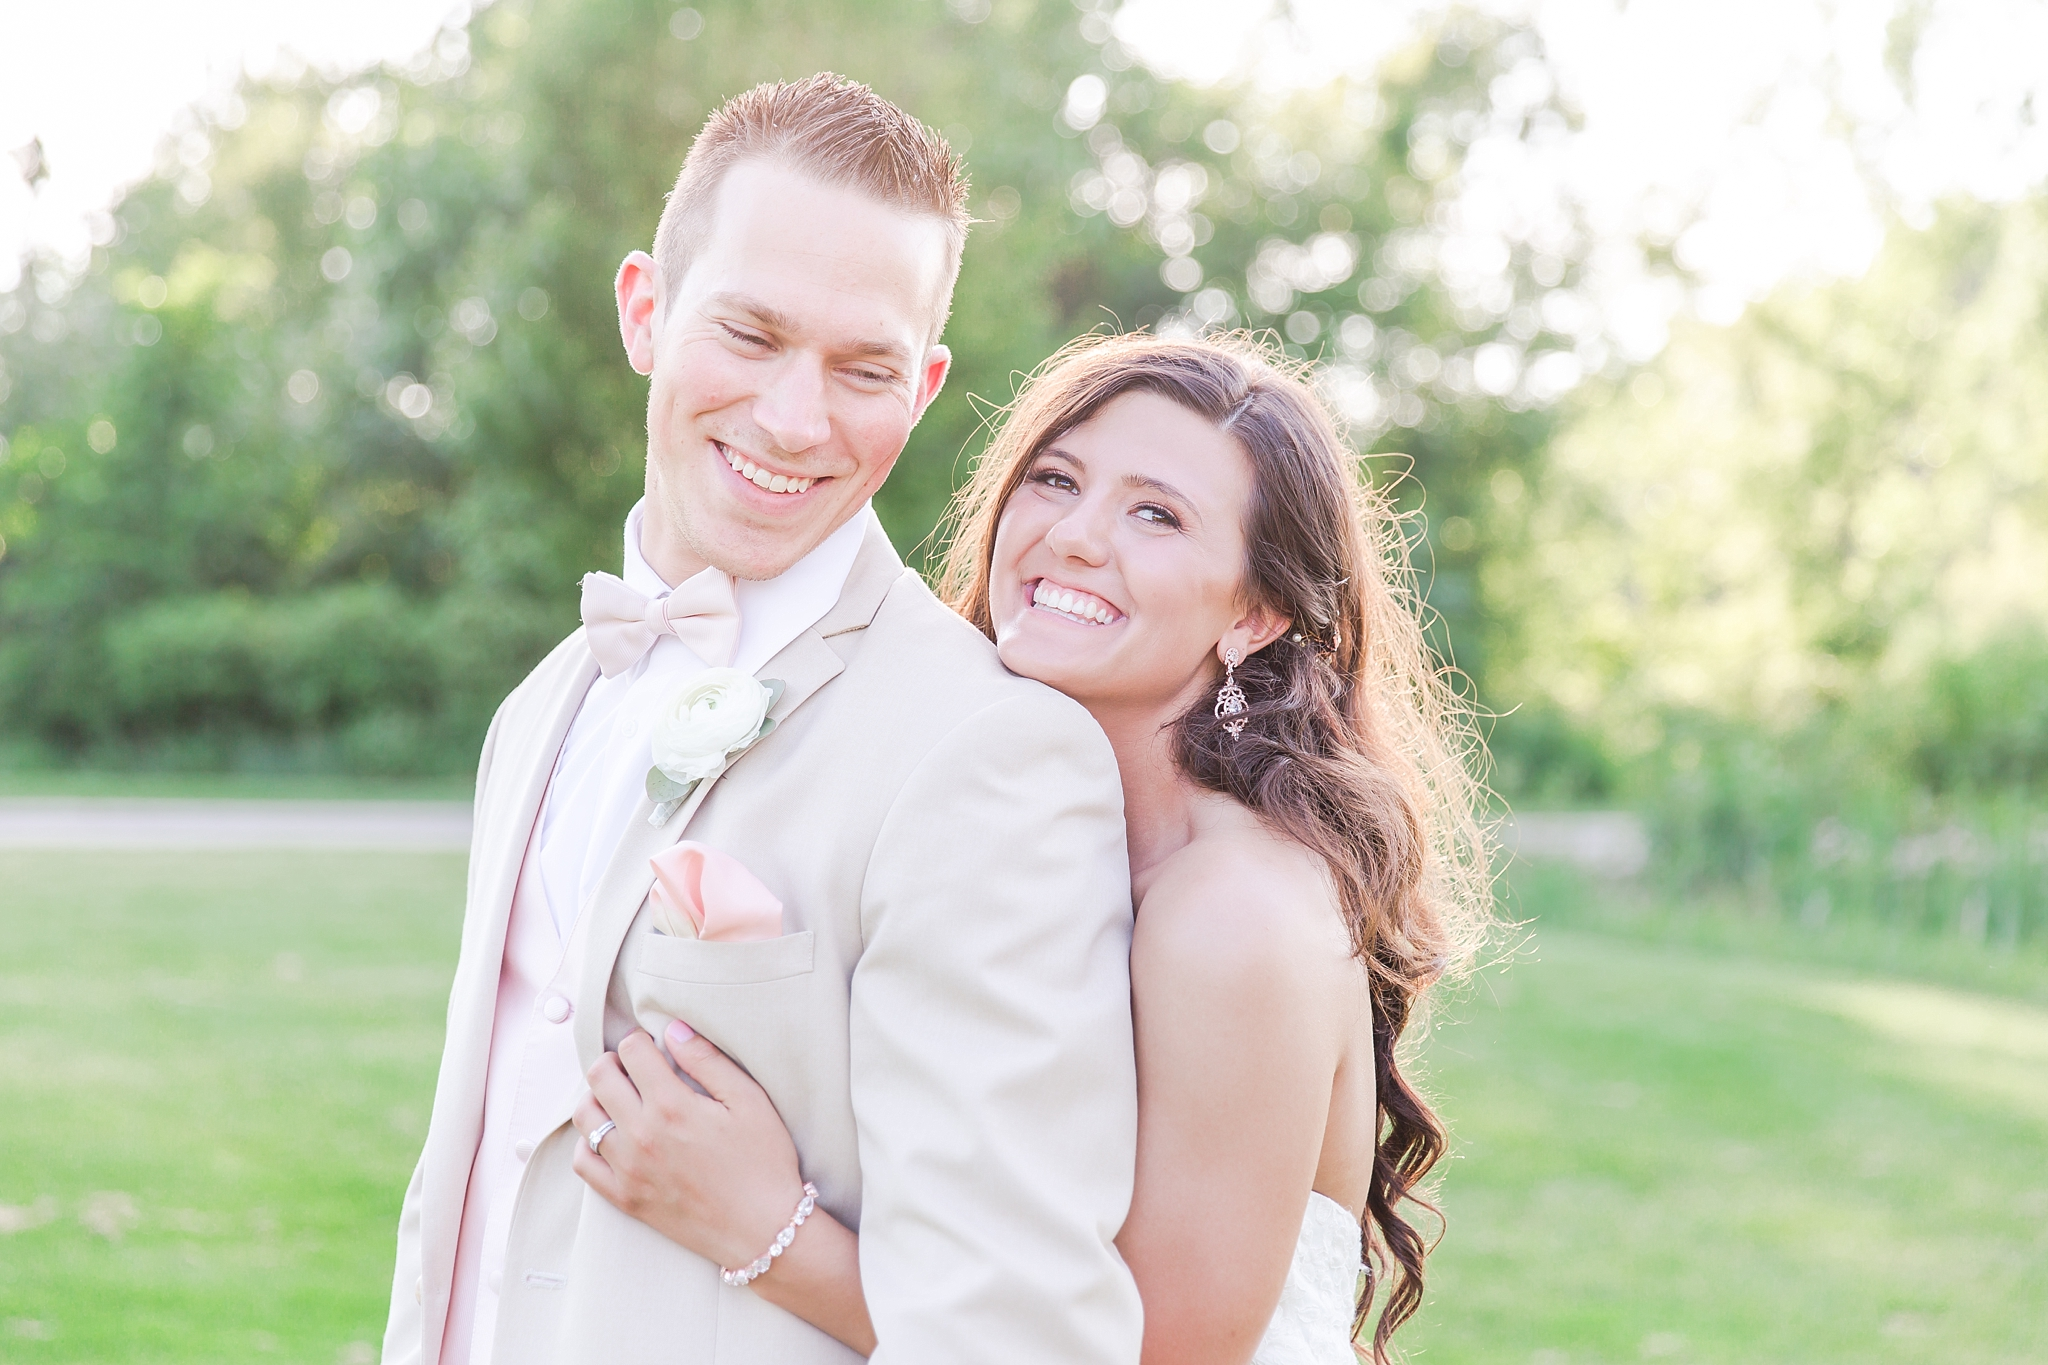 candid-timeless-wedding-photos-at-the-captains-club-in-grand-blanc-michigan-by-courtney-carolyn-photography_0086.jpg